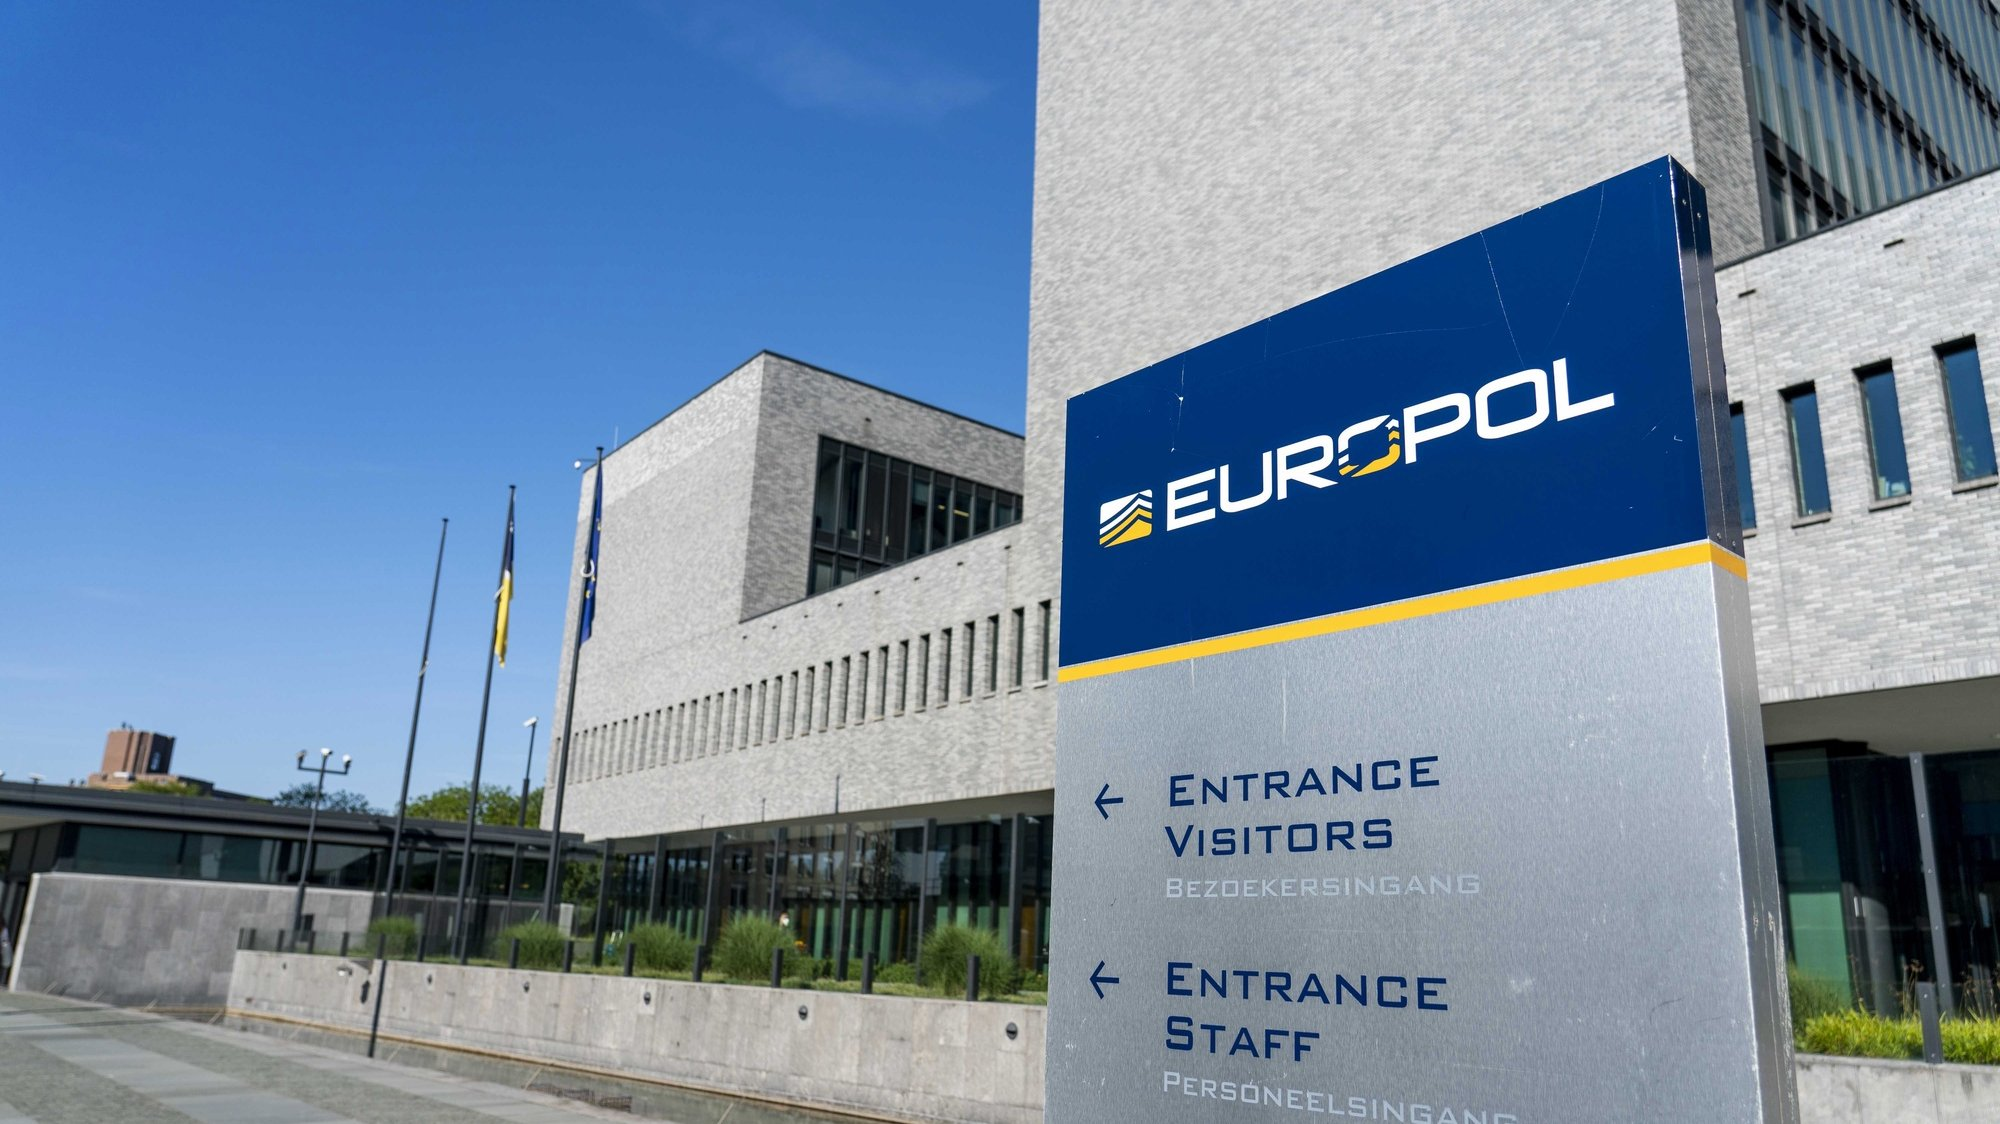 epa09254493 An exterior view of the Europol headquarters in The Hague, the Netherlands, 08 June 2021, prior to a Europol's press conference on one of the largest and most sophisticated law enforcement operations to date in the fight against encrypted criminal activities that resulted in the arrest of more than 800 people. According to a statement by the Europol, the US Federal Bureau of Investigation (FBI), the Dutch National Police, the Swedish Police Authority, in cooperation with the US Drug Enforcement Administration (DEA) and 16 other countries have carried out the investigations with the support of Europol.  EPA/JERRY LAMPEN